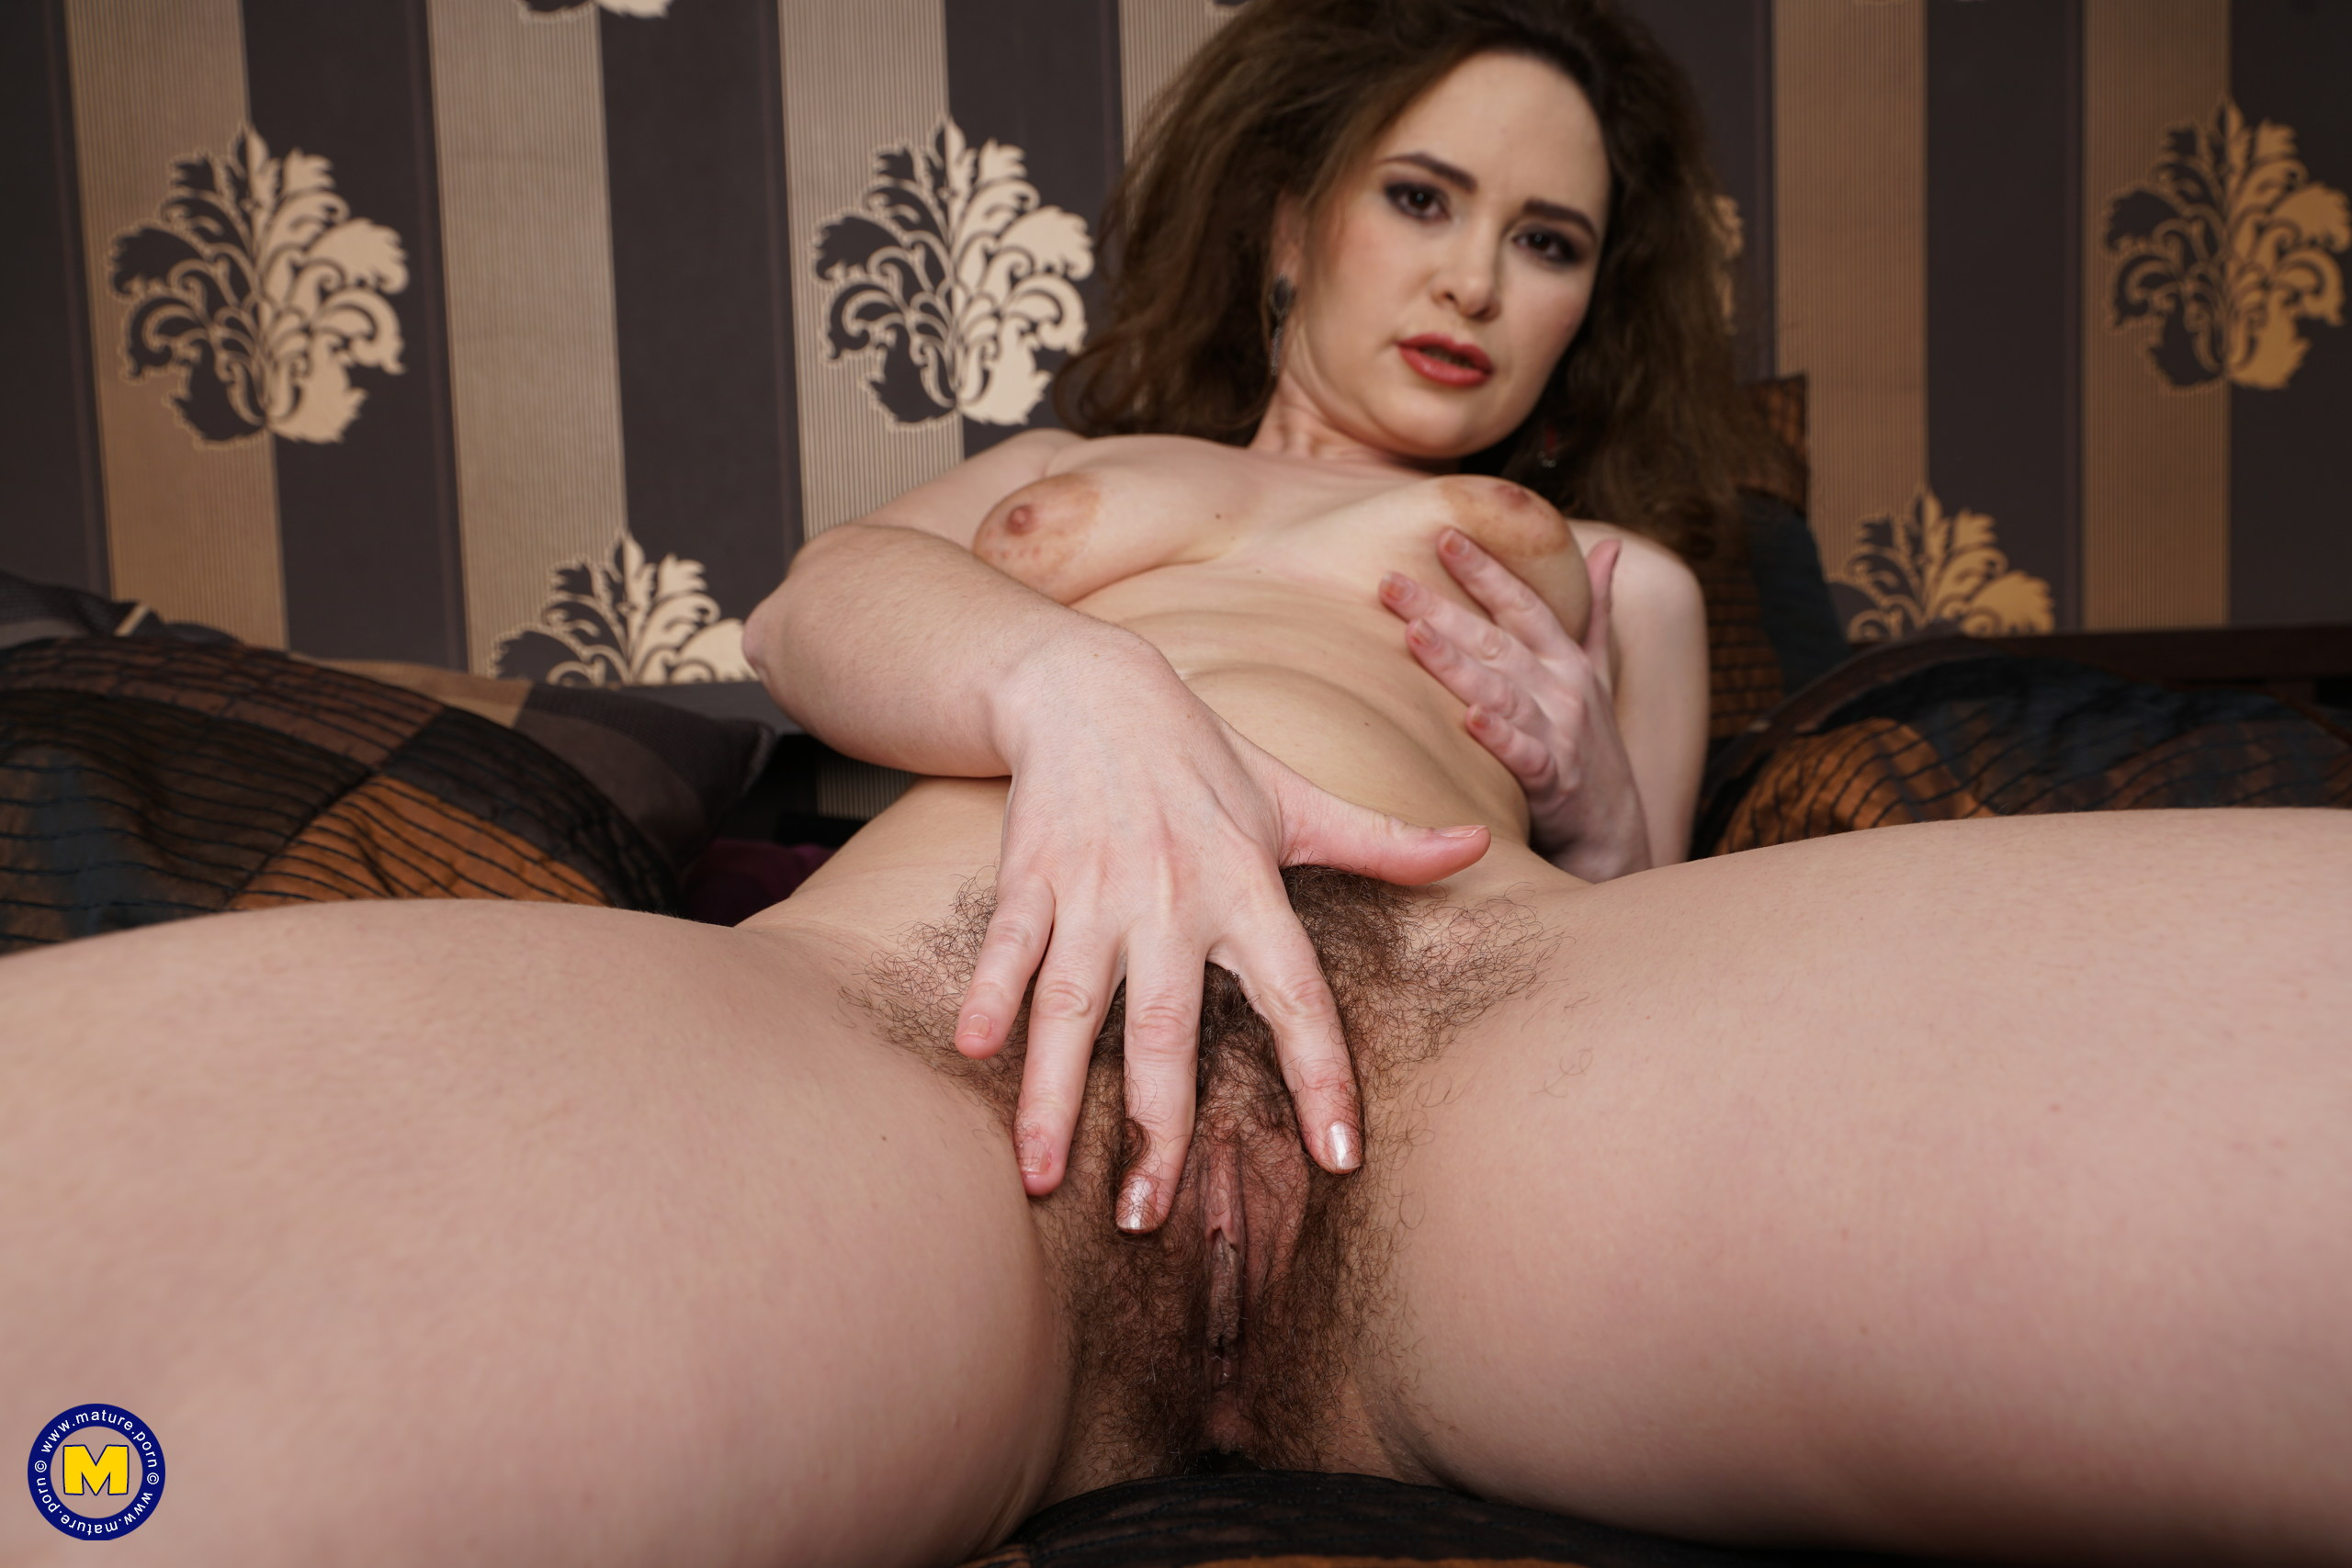 Utterly hairy housewife toying with her cooch